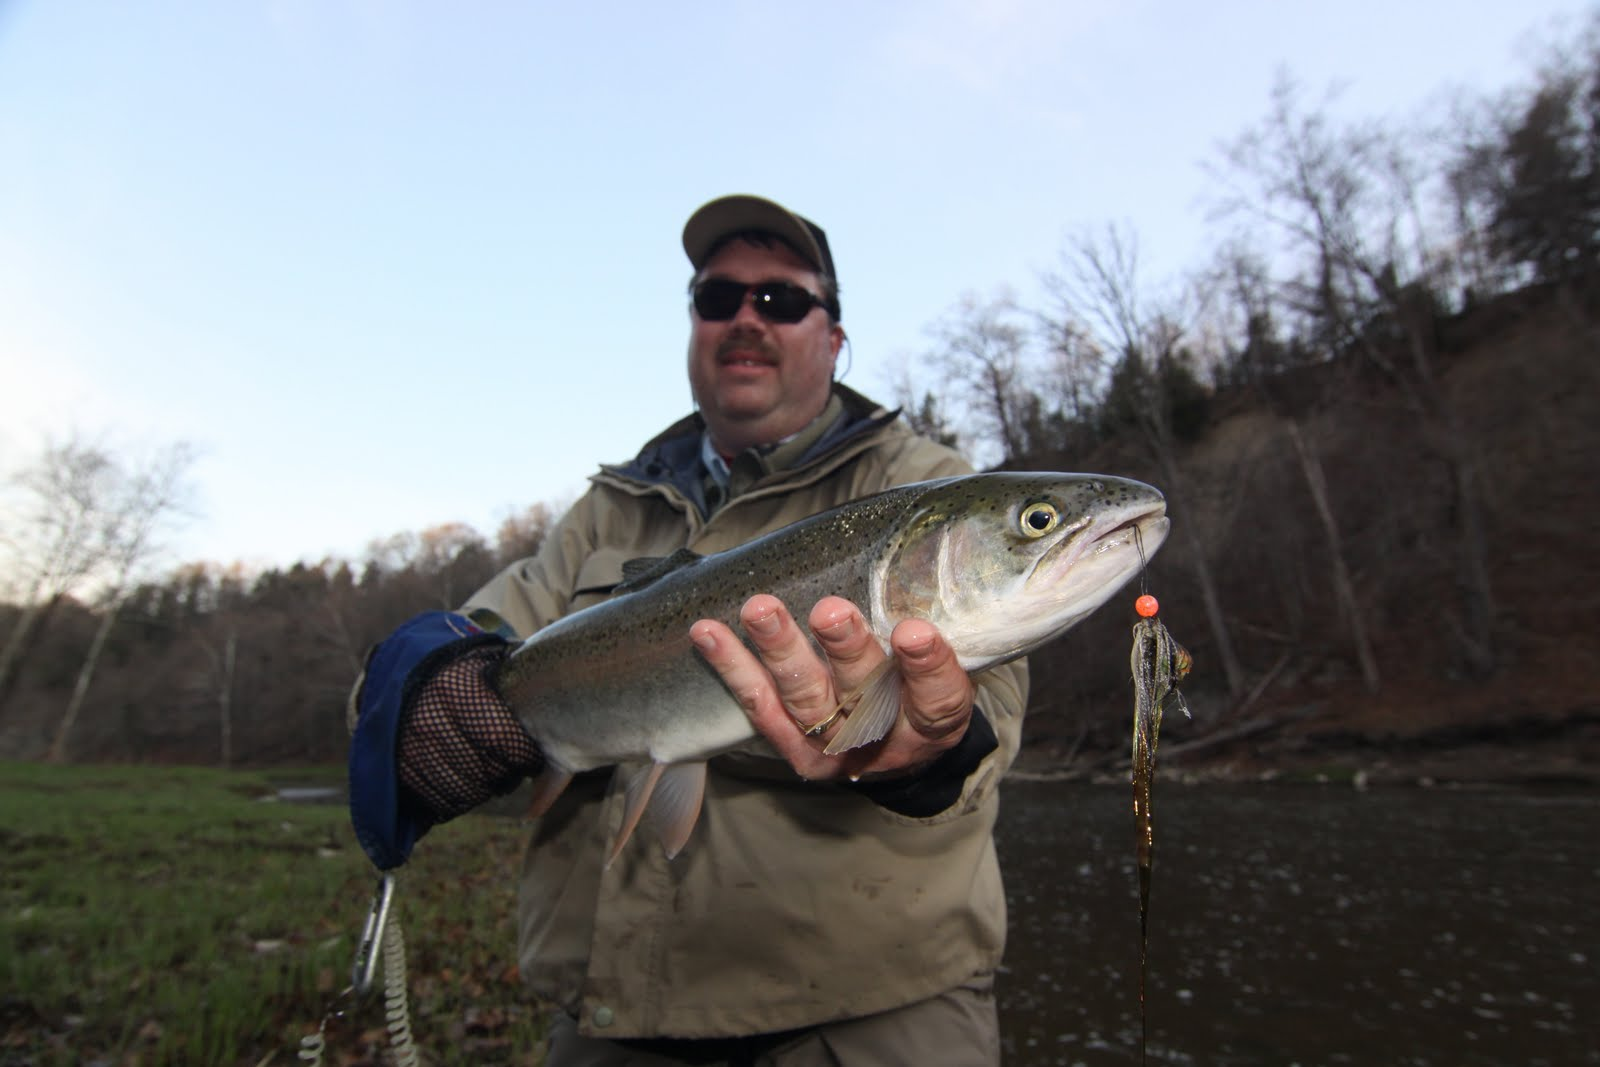 Steelhead alley outfitters lake erie fly fishing guide for Steelhead fishing ohio